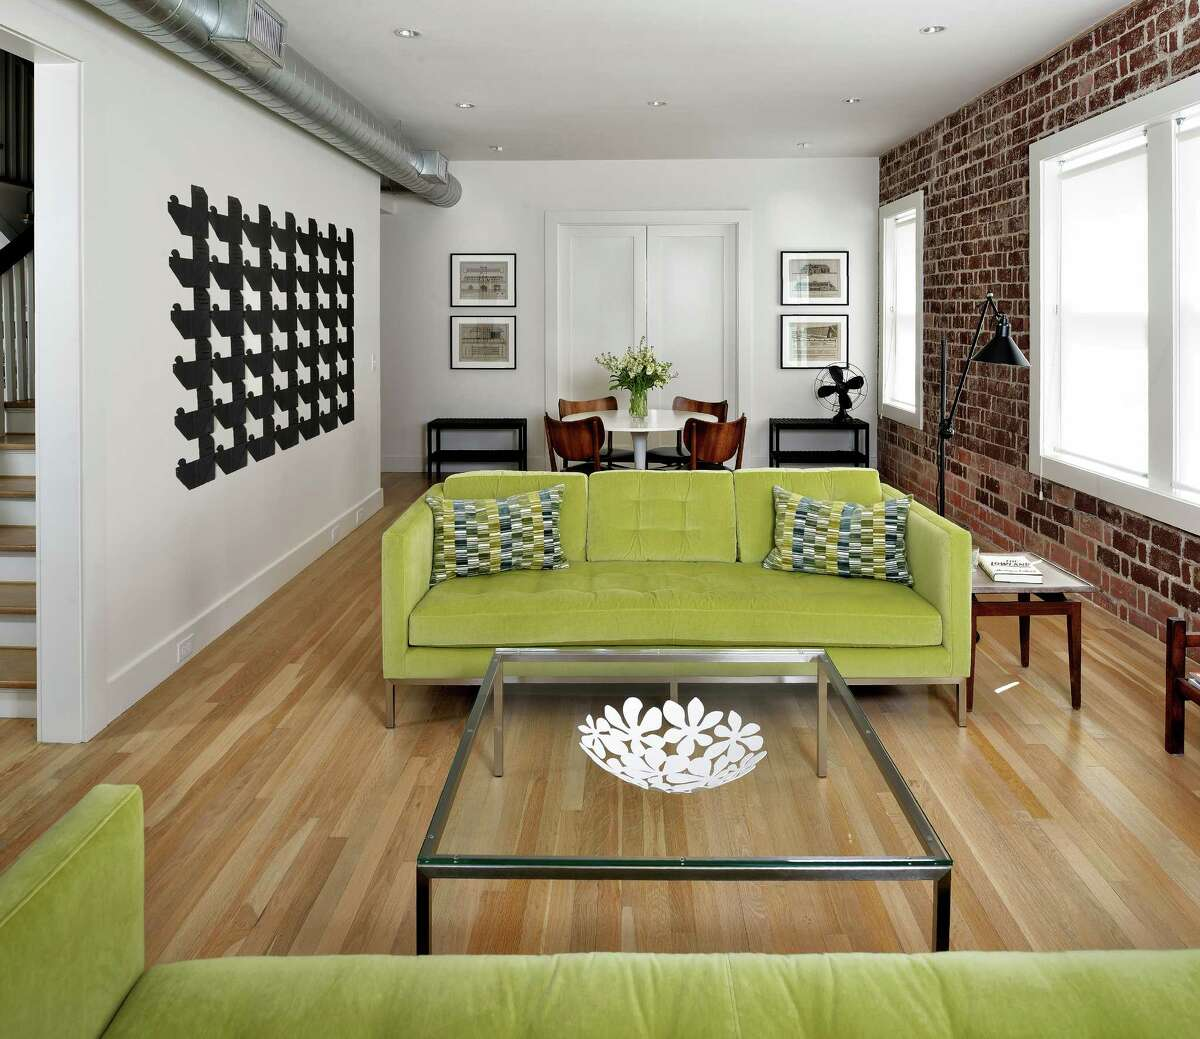 The Dentler building's first floor, western side originally had walls and doors separating it into smaller spaces for an apartment. Now it's a roomy casual living room.